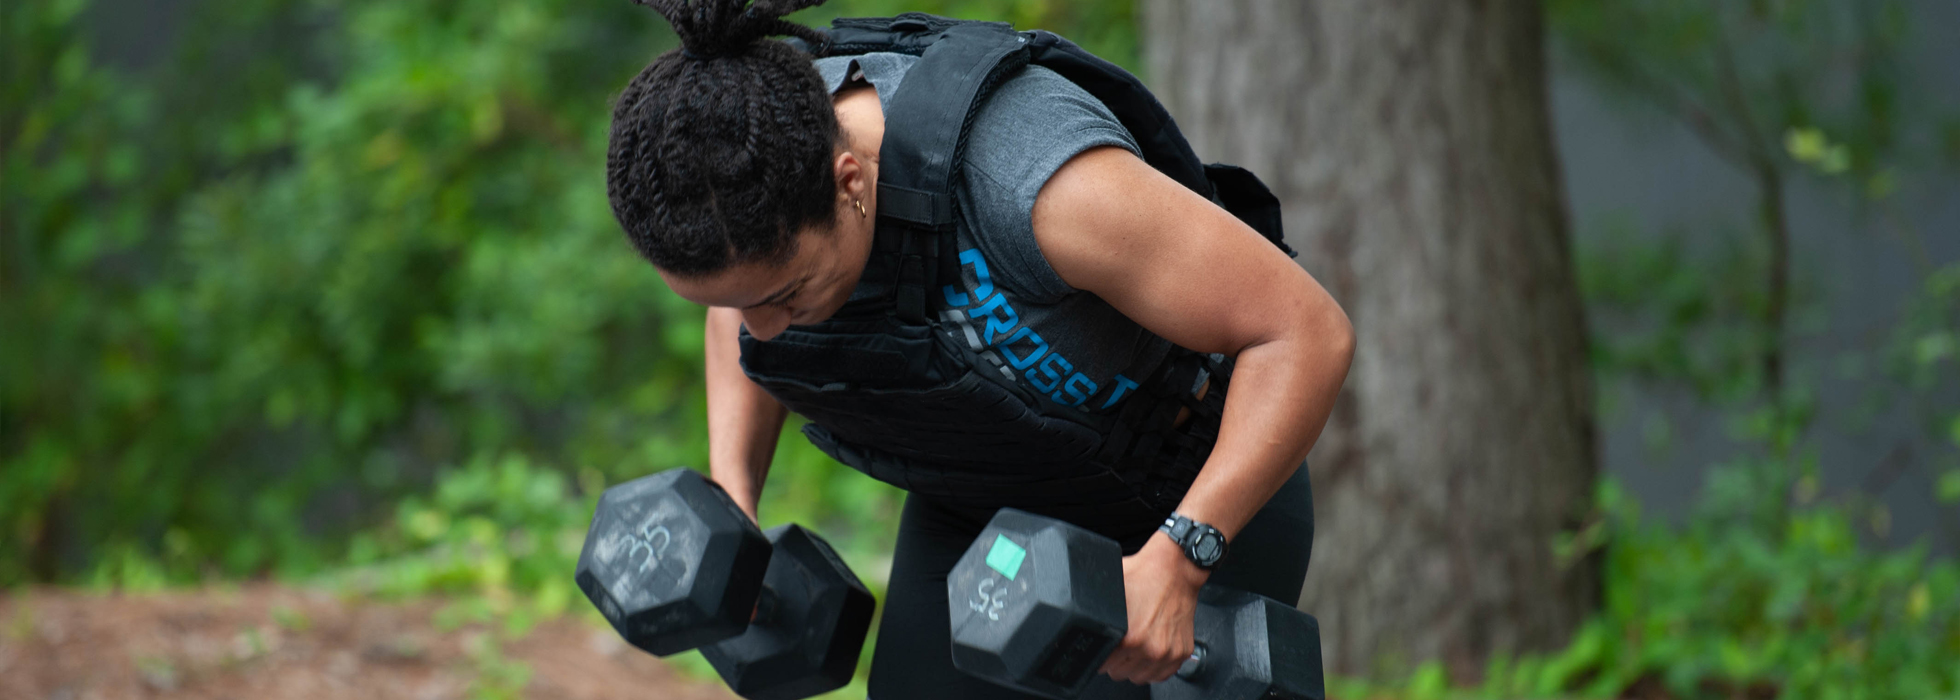 Personal Fitness Training in Raleigh NC, Personal Fitness Training near Cary NC, Personal Fitness Training near Wake Forest NC, Personal Fitness Training near North Raleigh NC